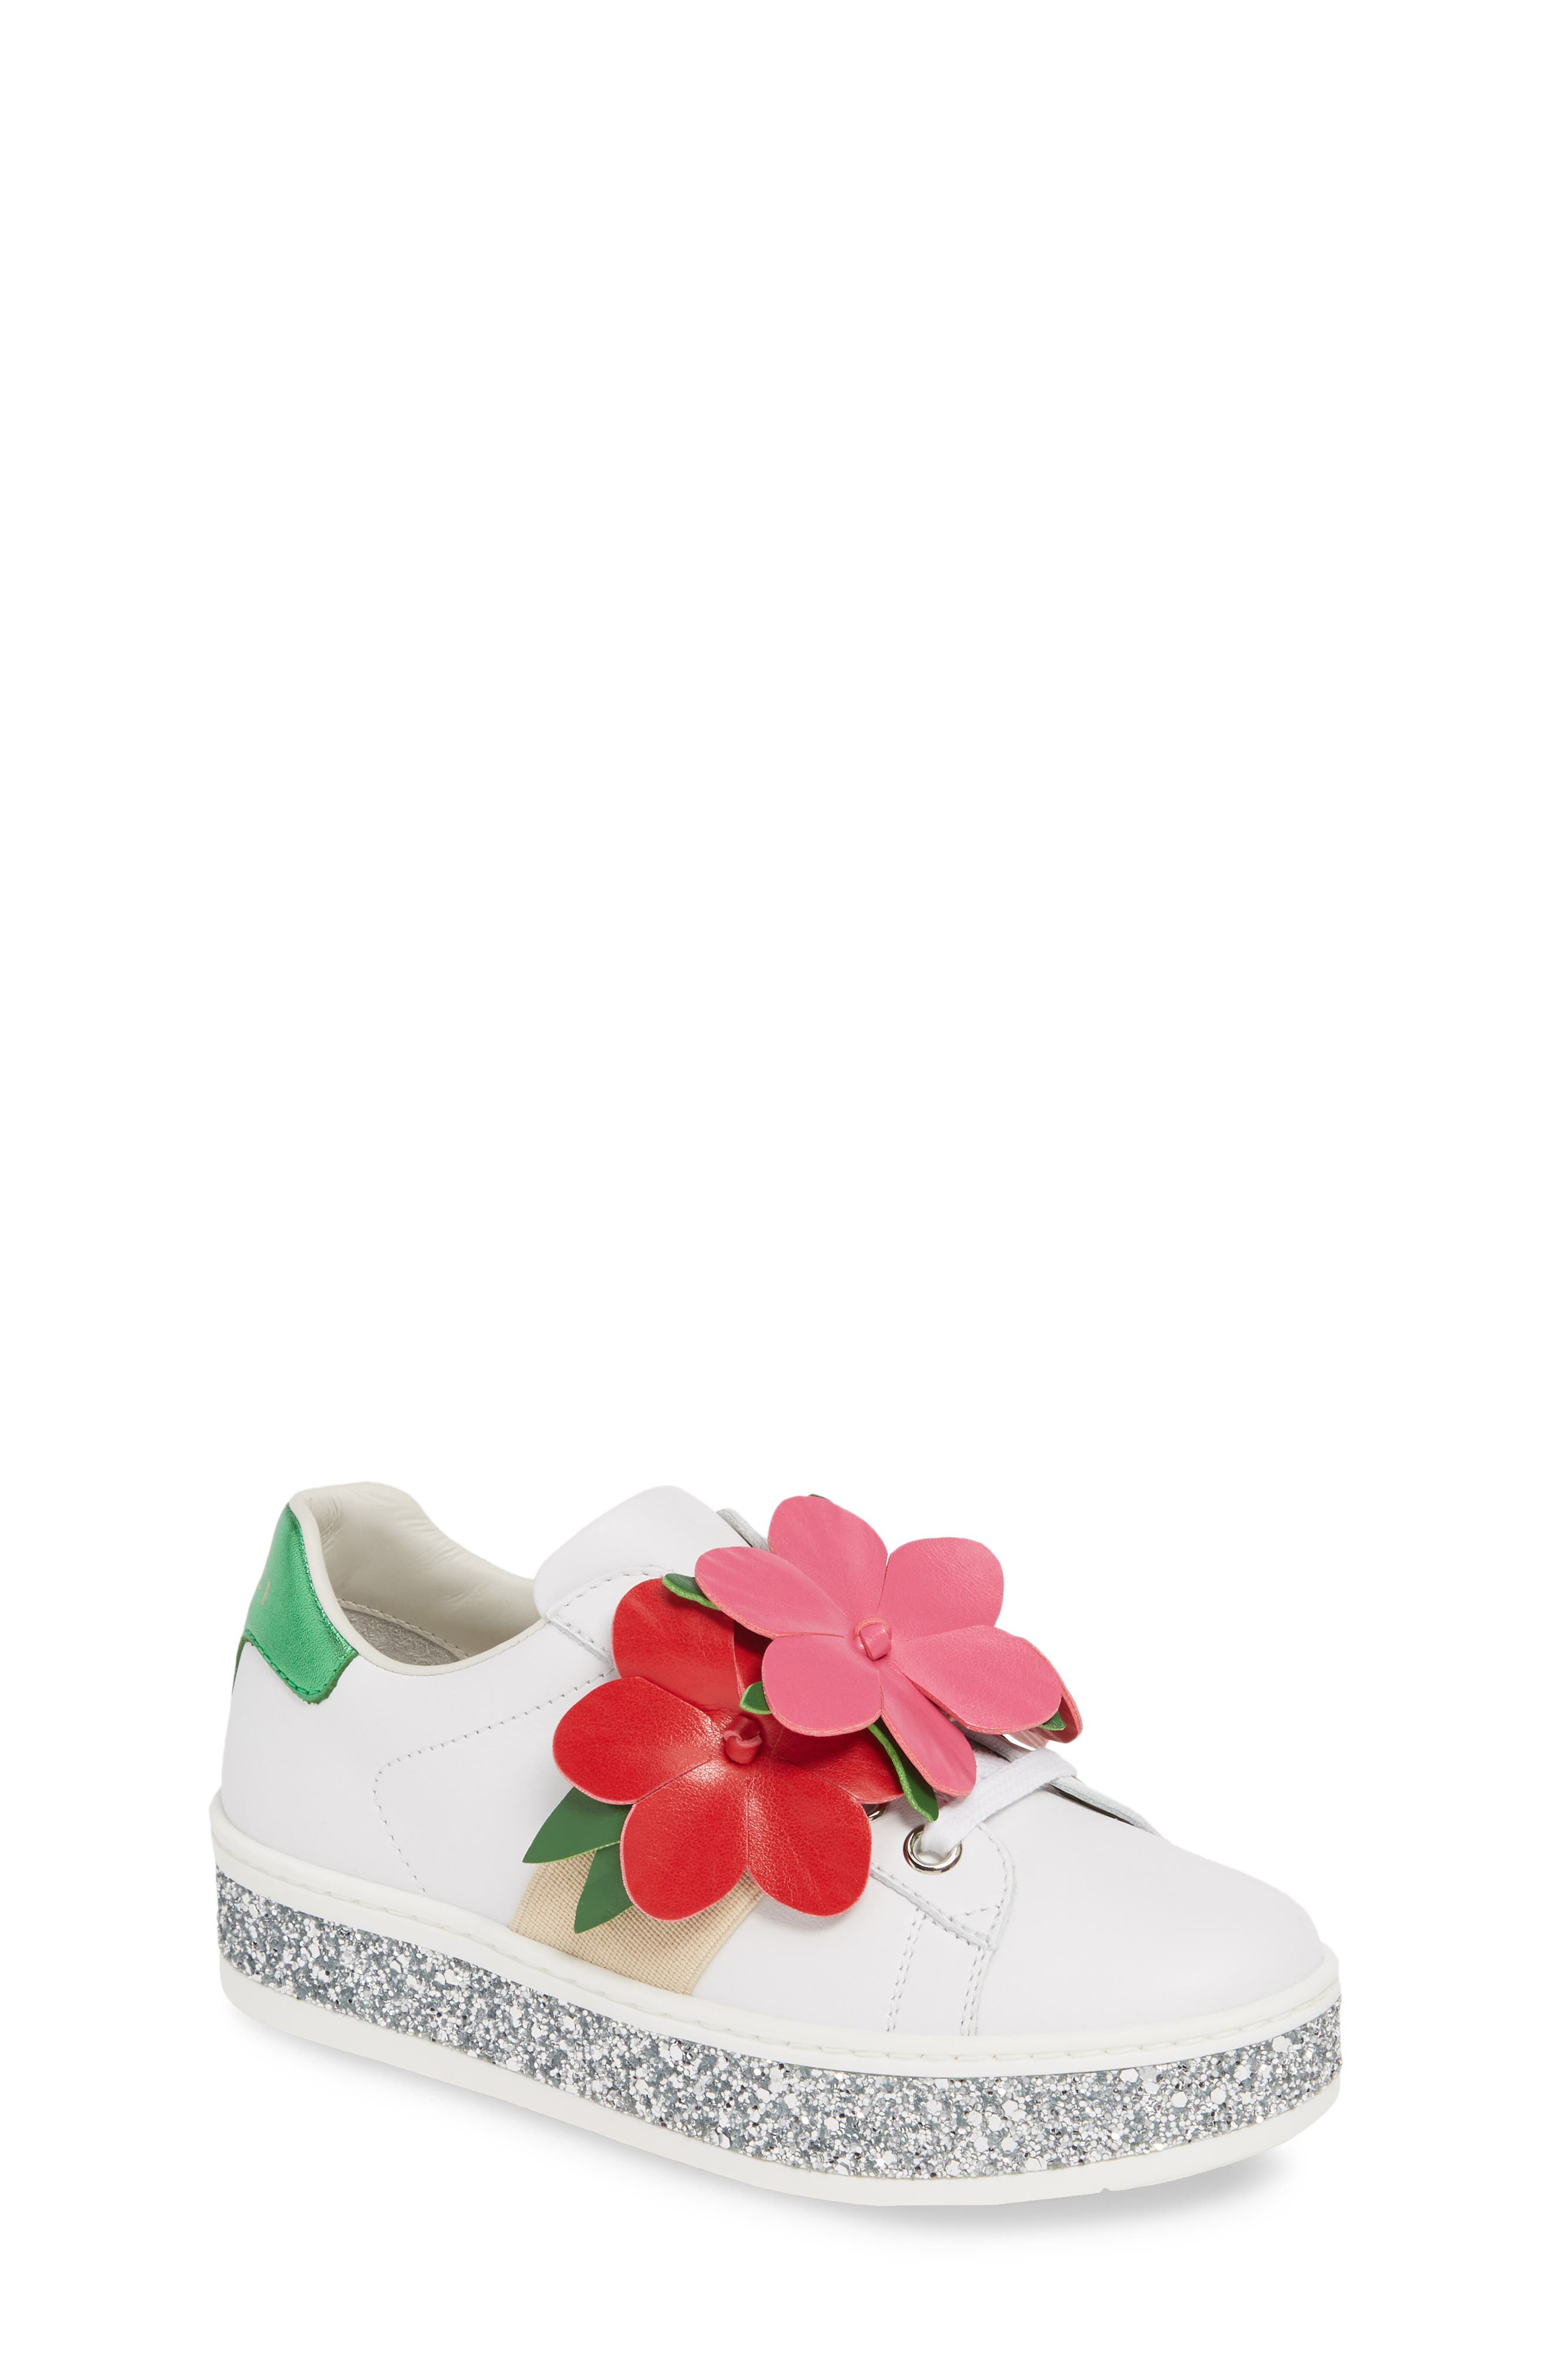 Toddler Gucci New Ace Flower Glitter Platform Sneaker Size 2US  33EU  White